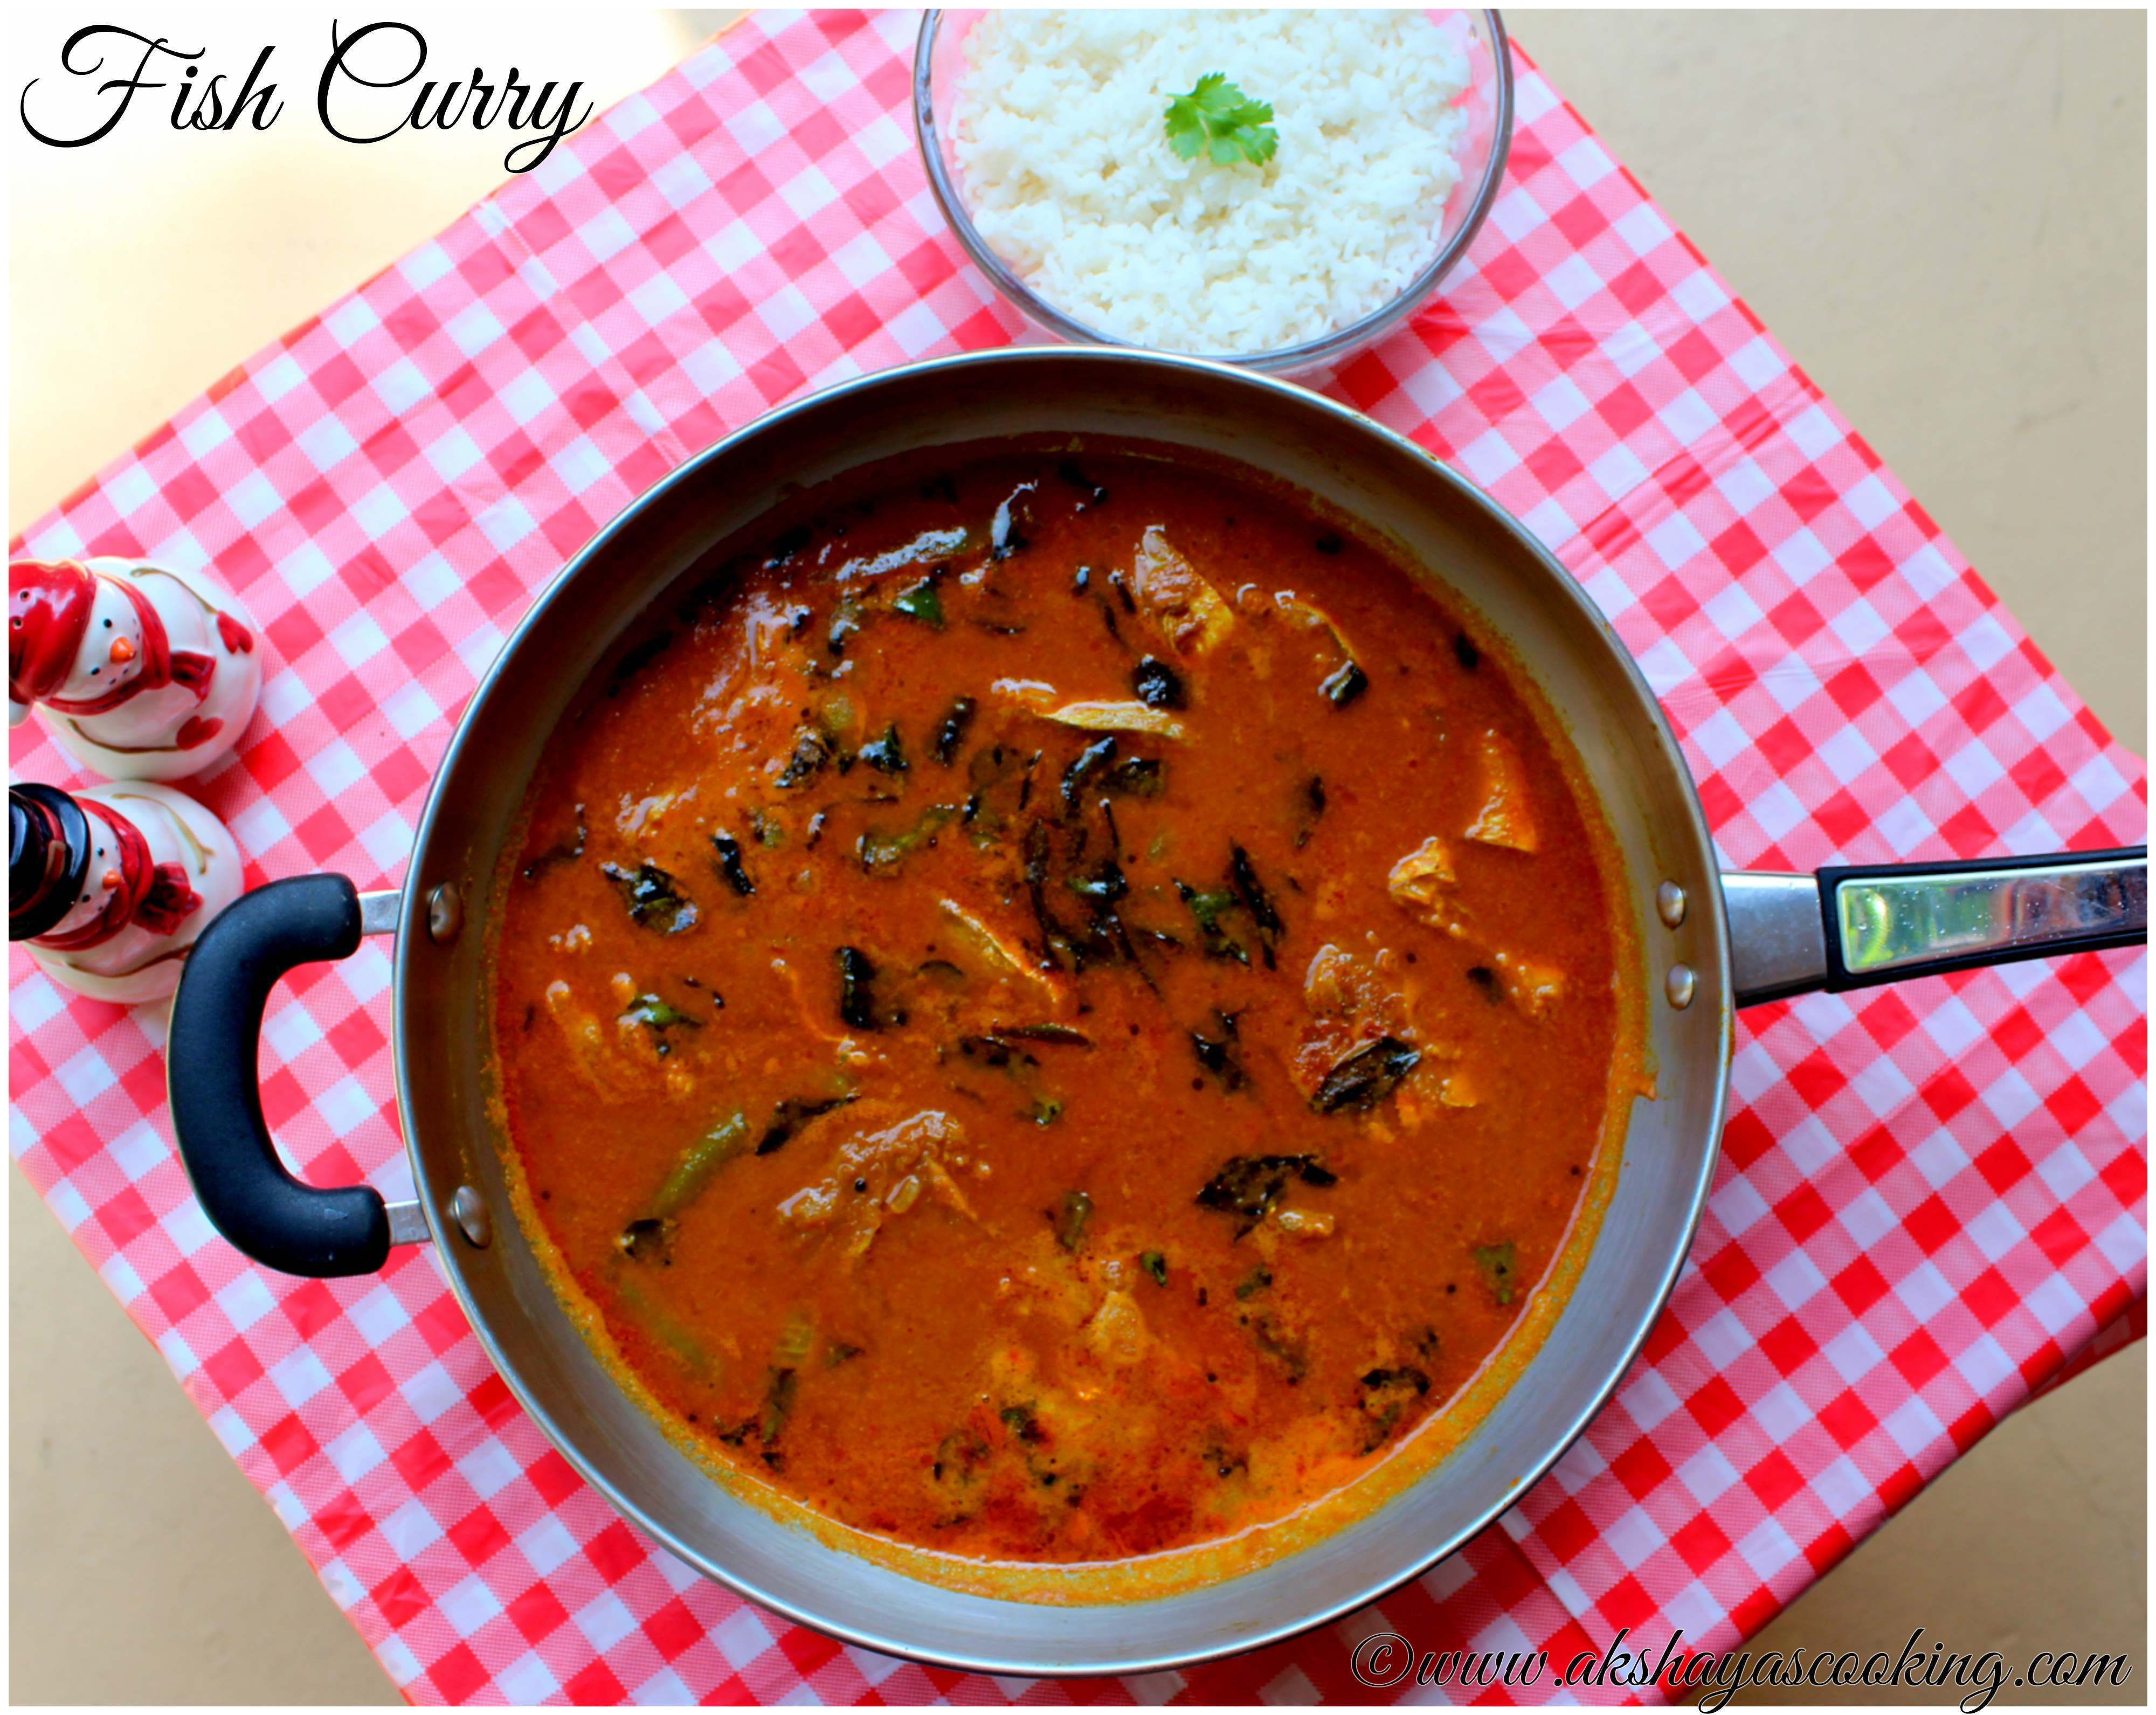 Fish curry with coconut | Golden thread coconut curry